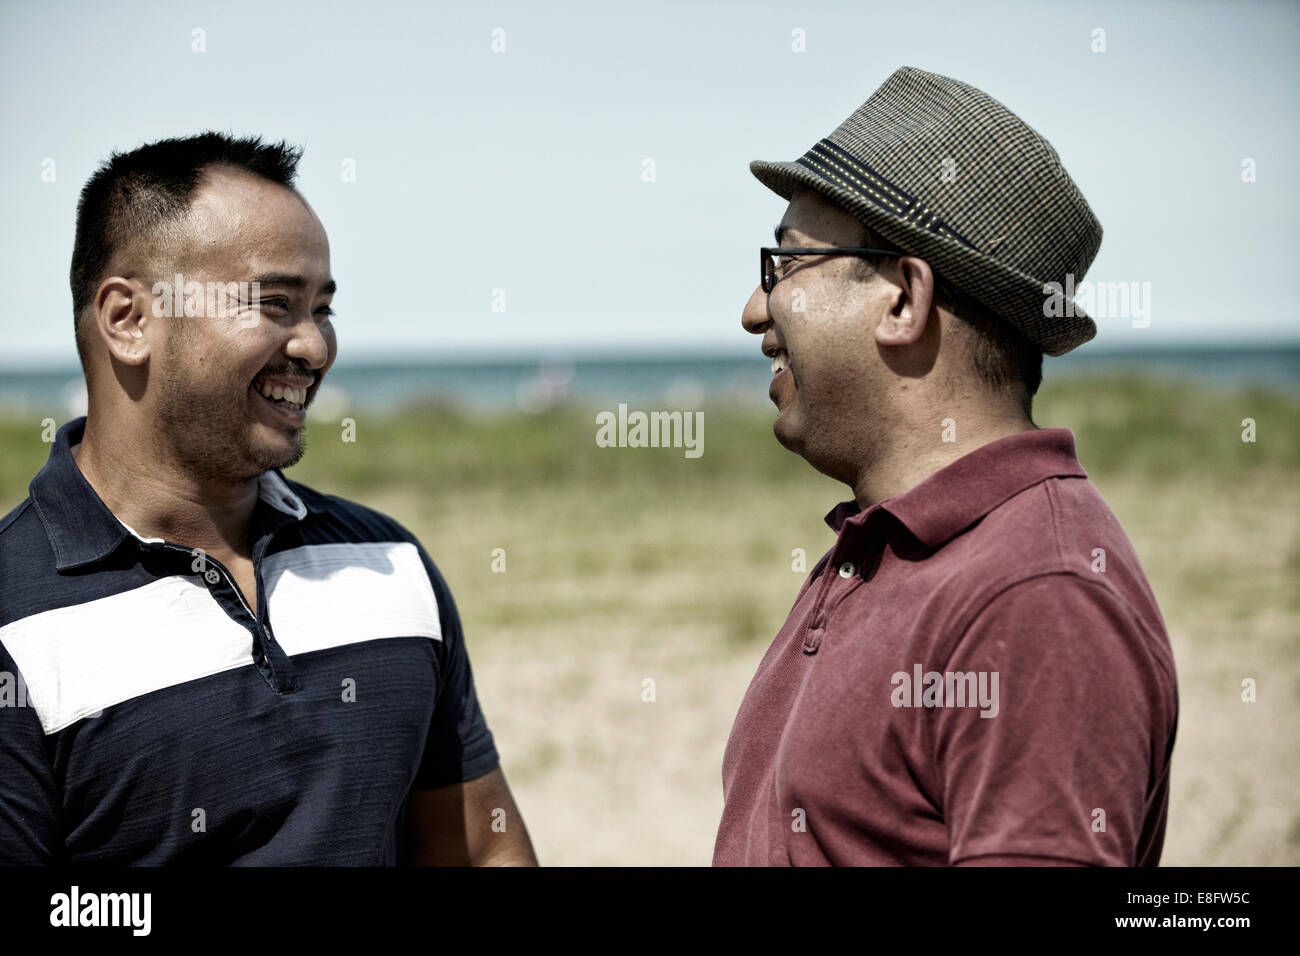 États-unis, Illinois, Chicago, comté de Cook, deux hommes on beach Photo Stock